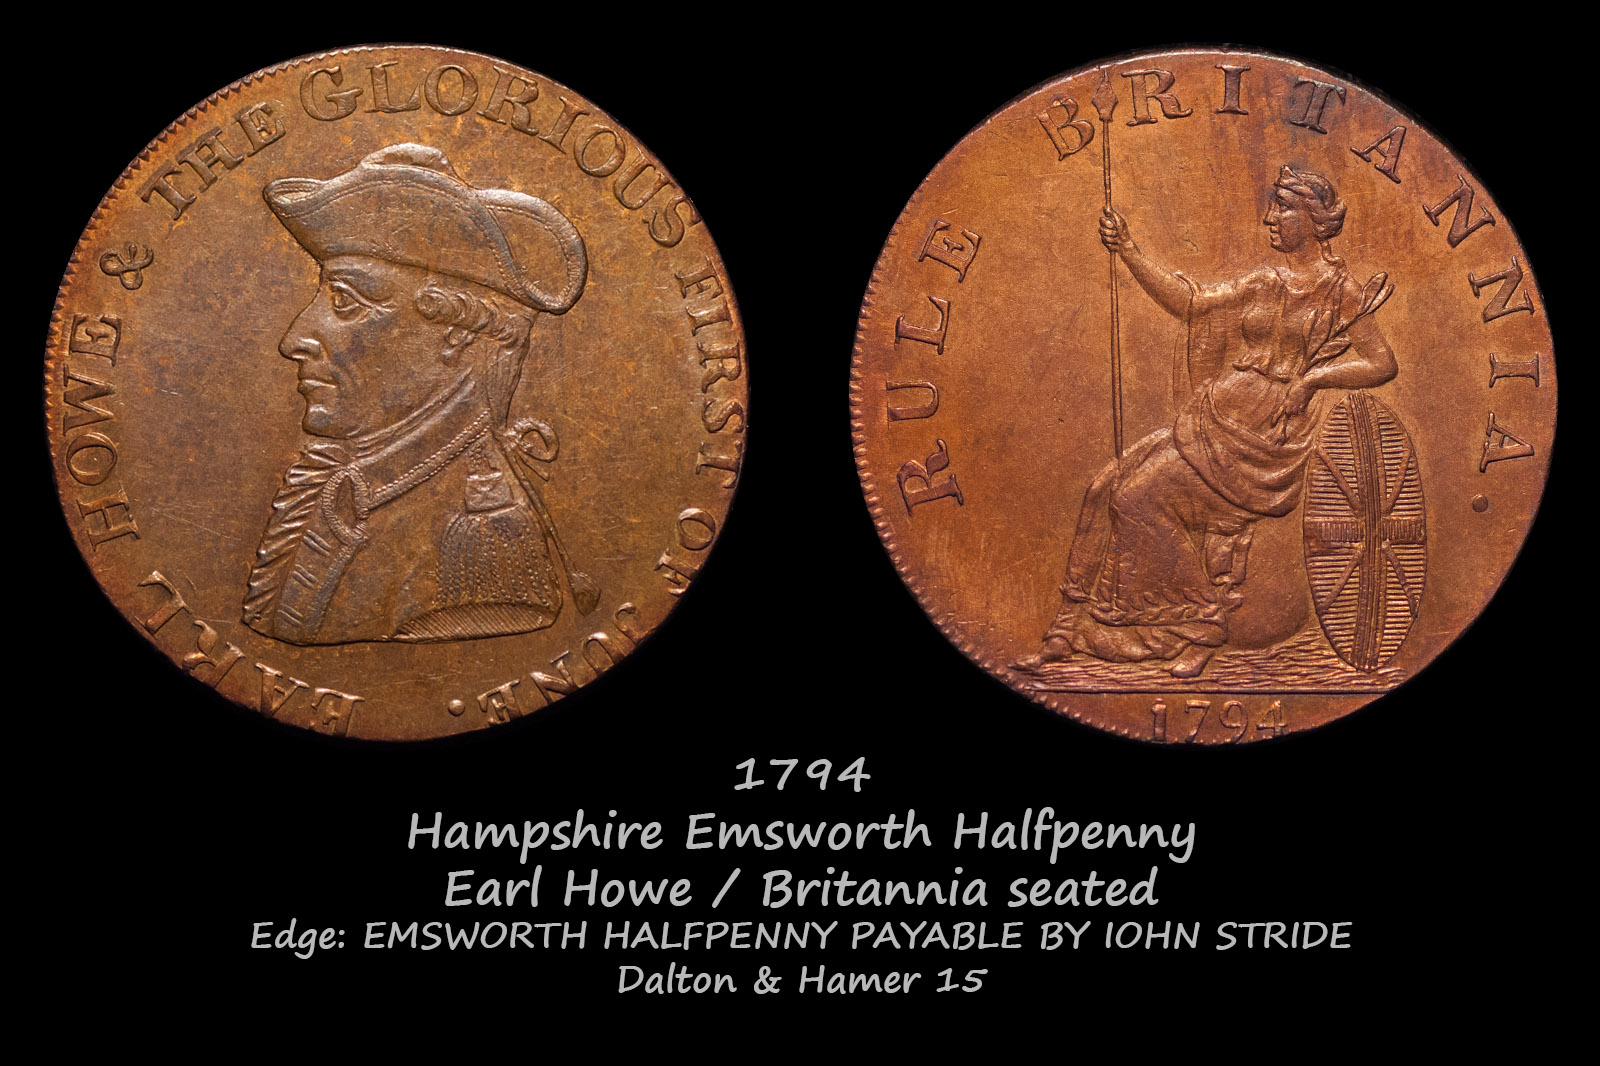 Hampshire Emsworth Halfpenny D&H15